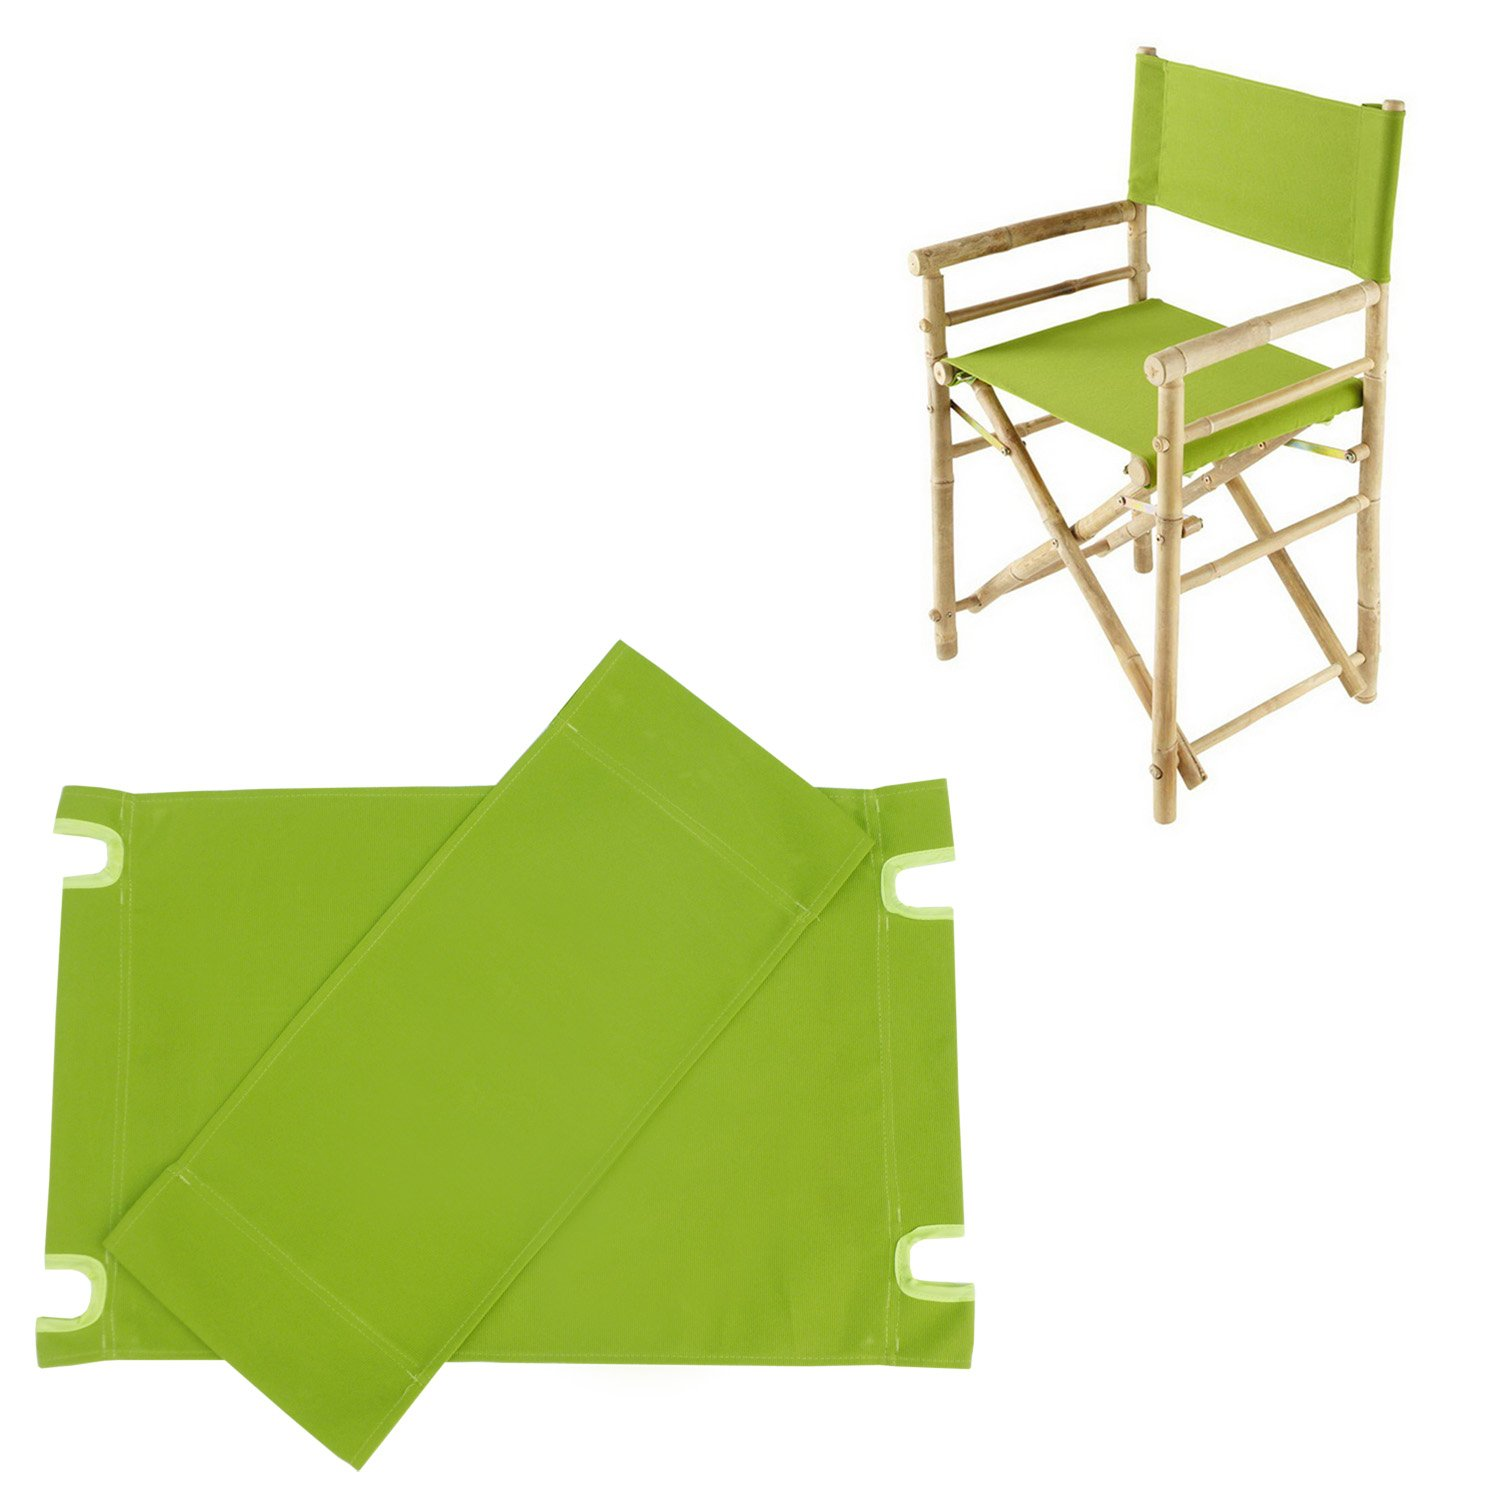 Zew Replacement UV Treated Color Durable Canvas for Bamboo Folding Directors Chairs, Green by Zew